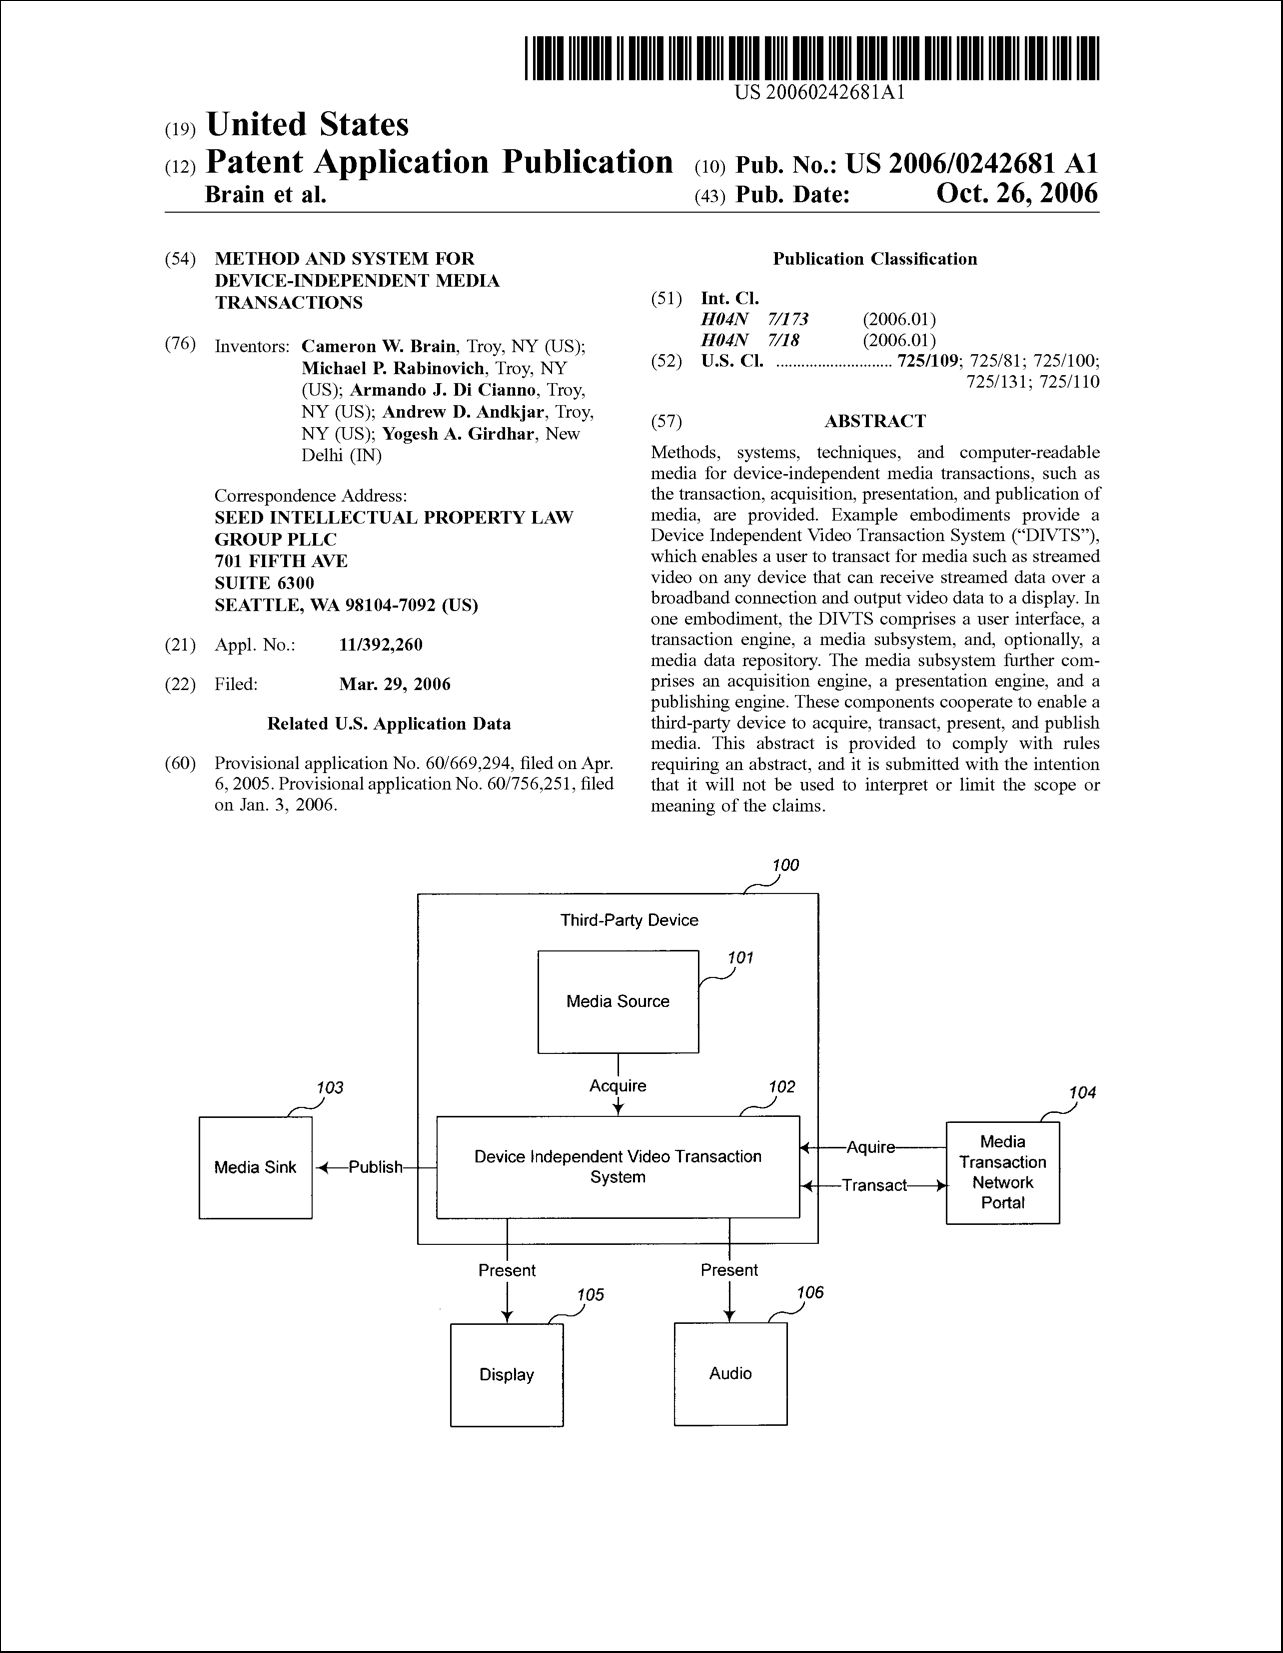 Method and system for device-independent media transactions